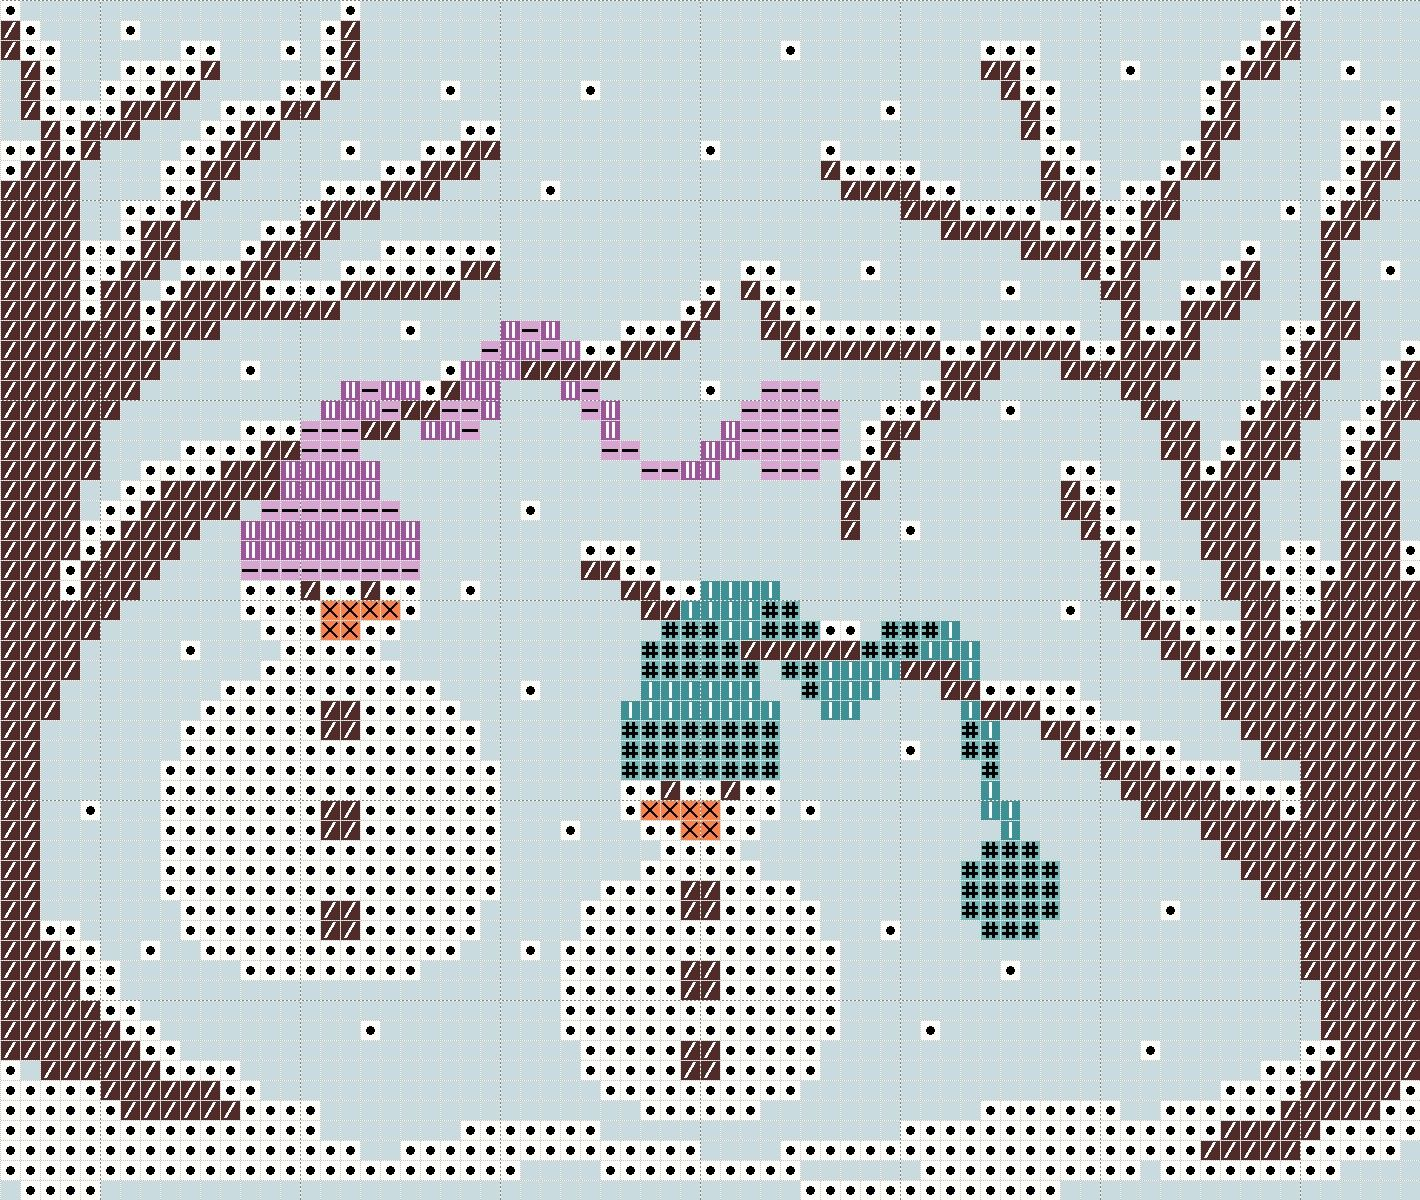 Stickeules Freebies: Winter - very interesting patterns here!